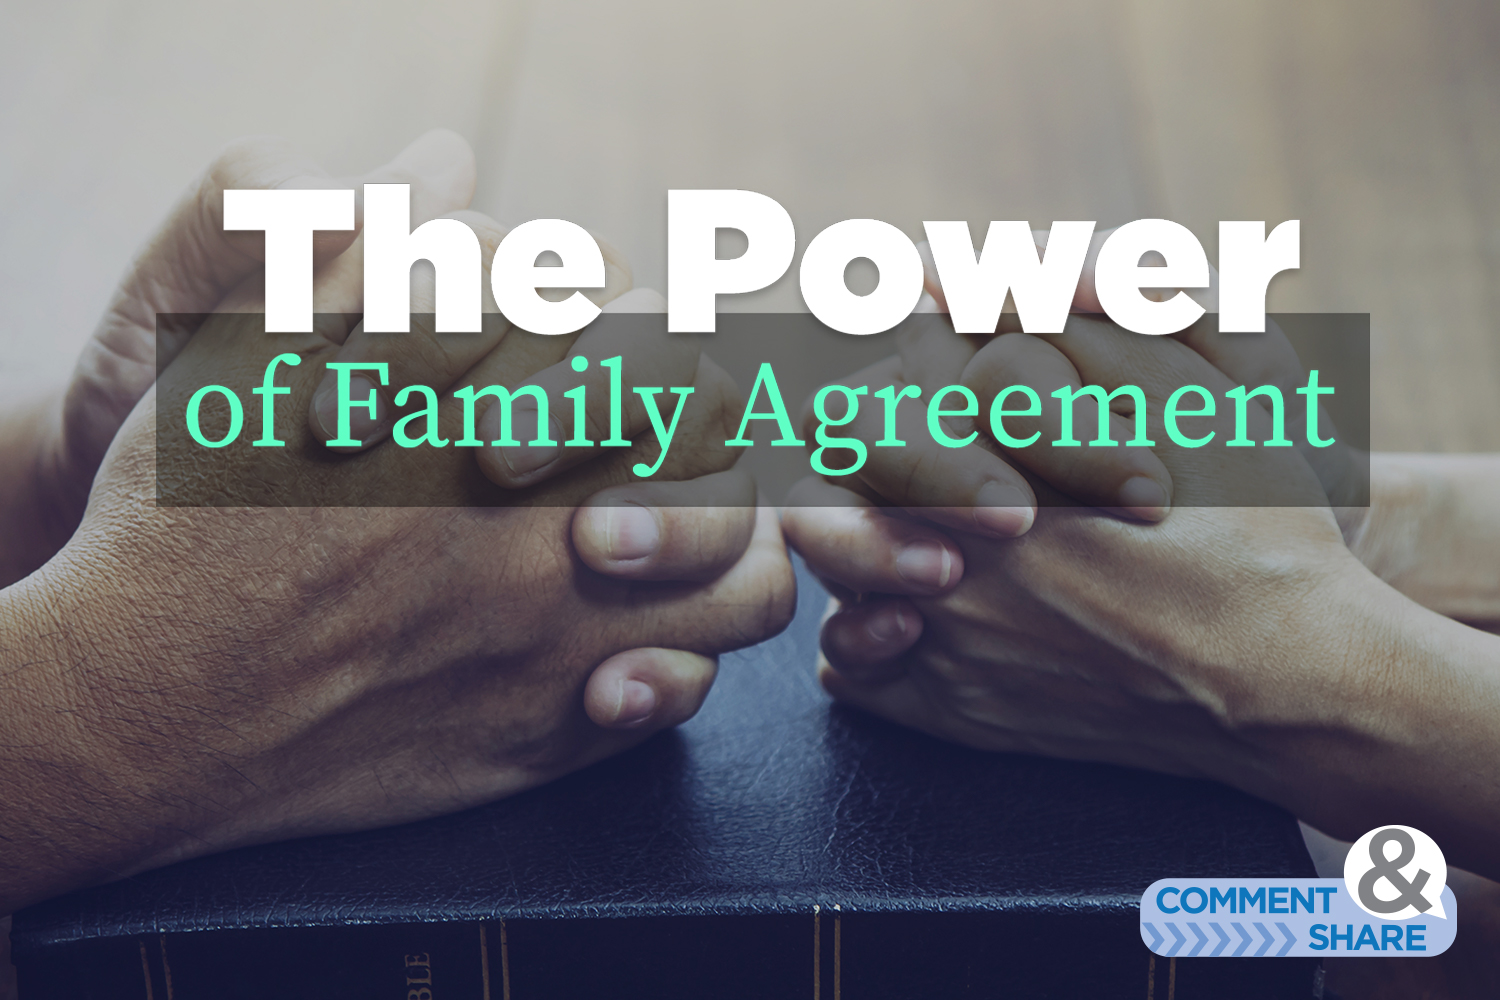 The Power of Family Agreement